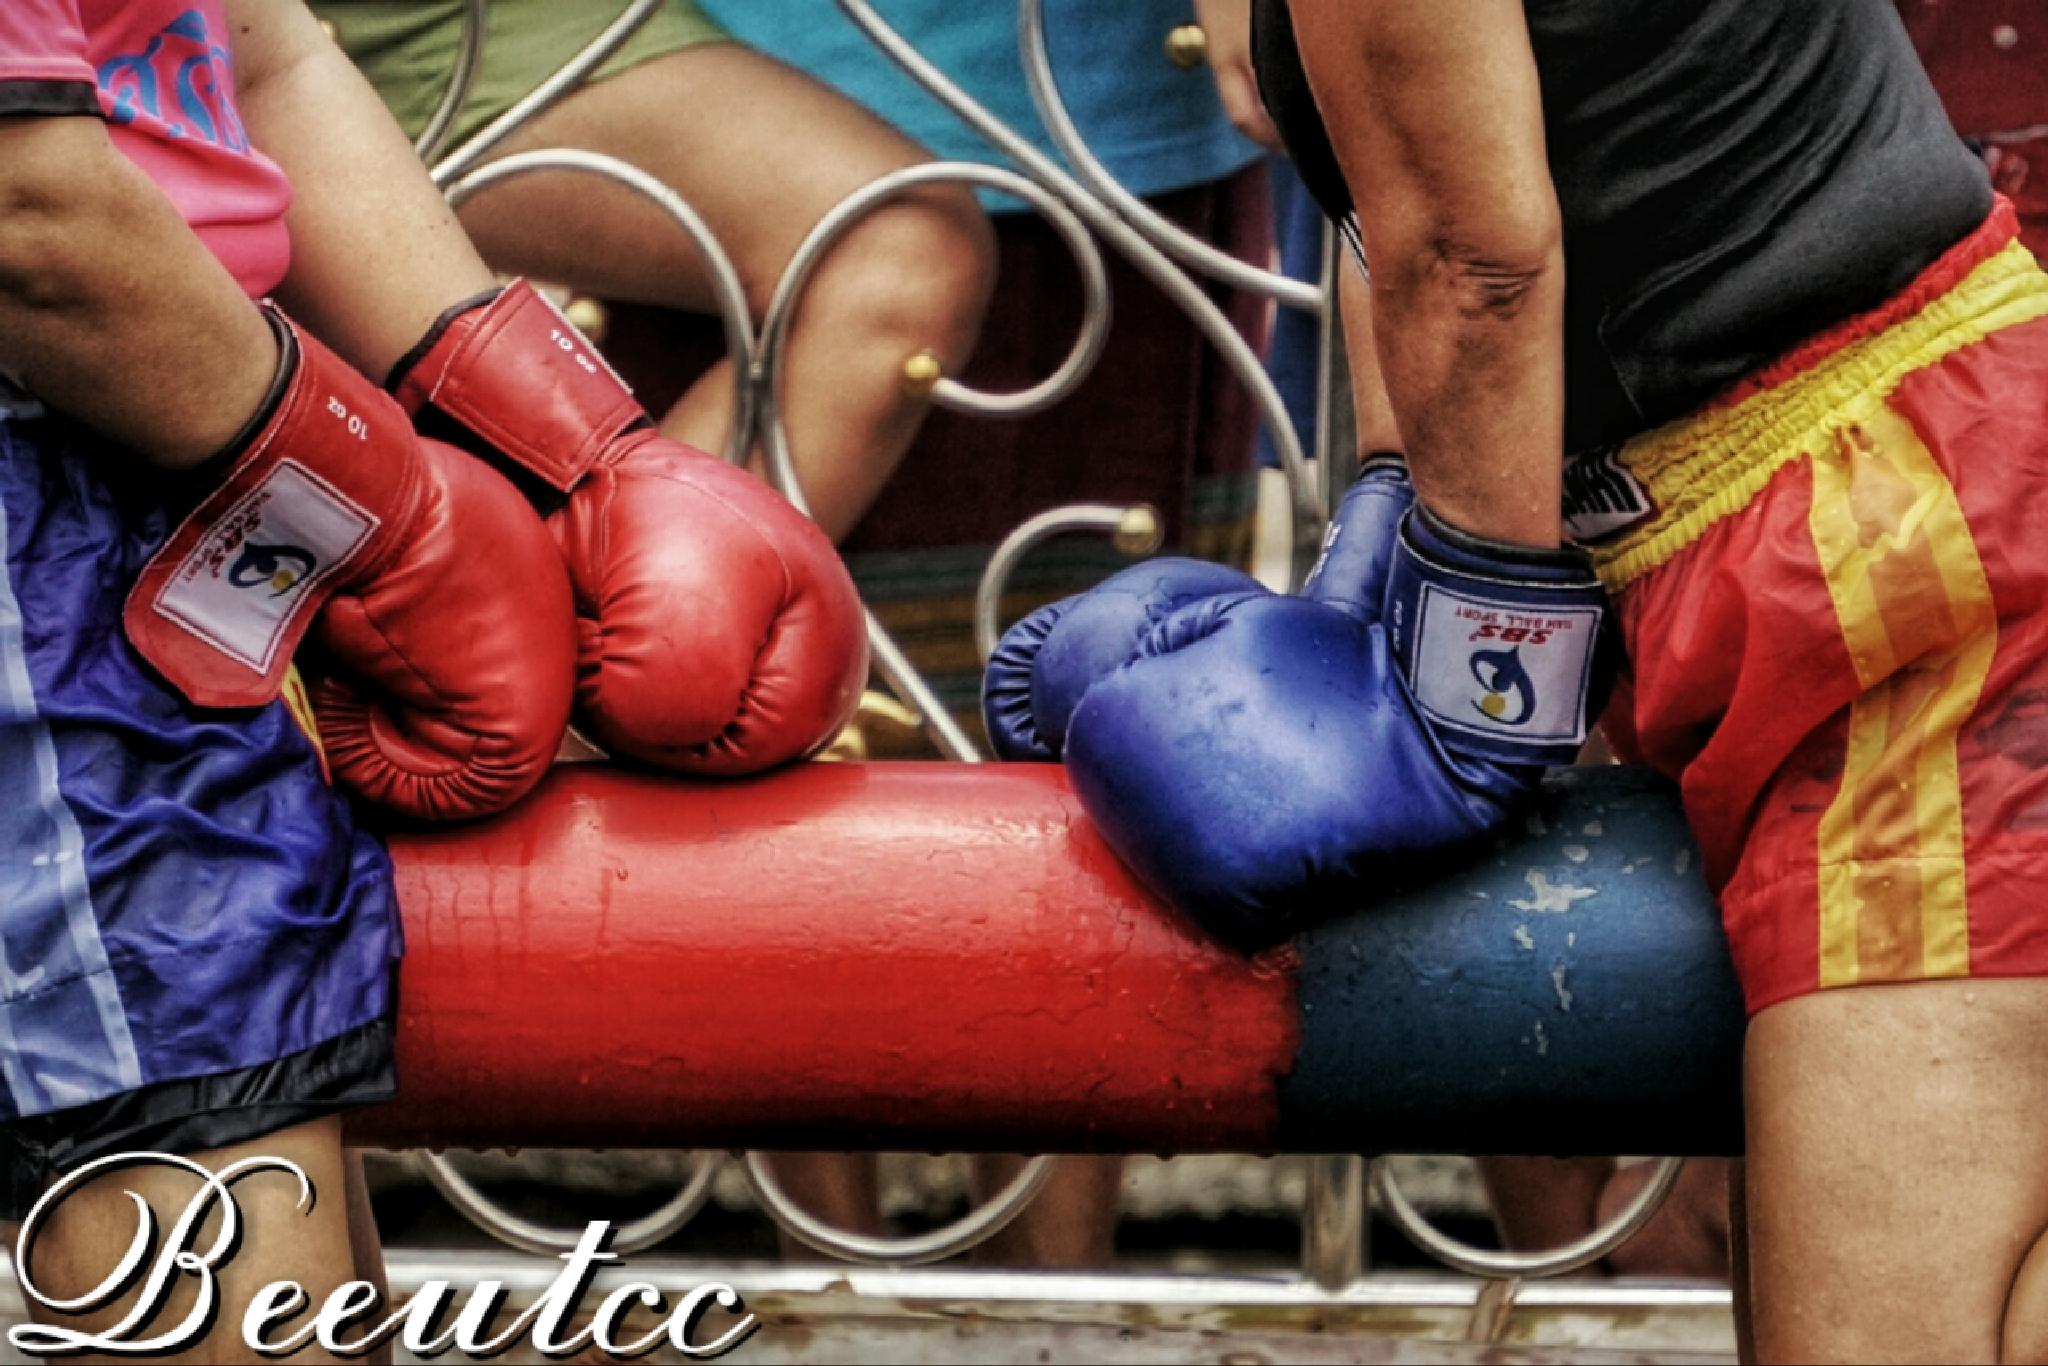 Get in the ring by Natthawut Meesri